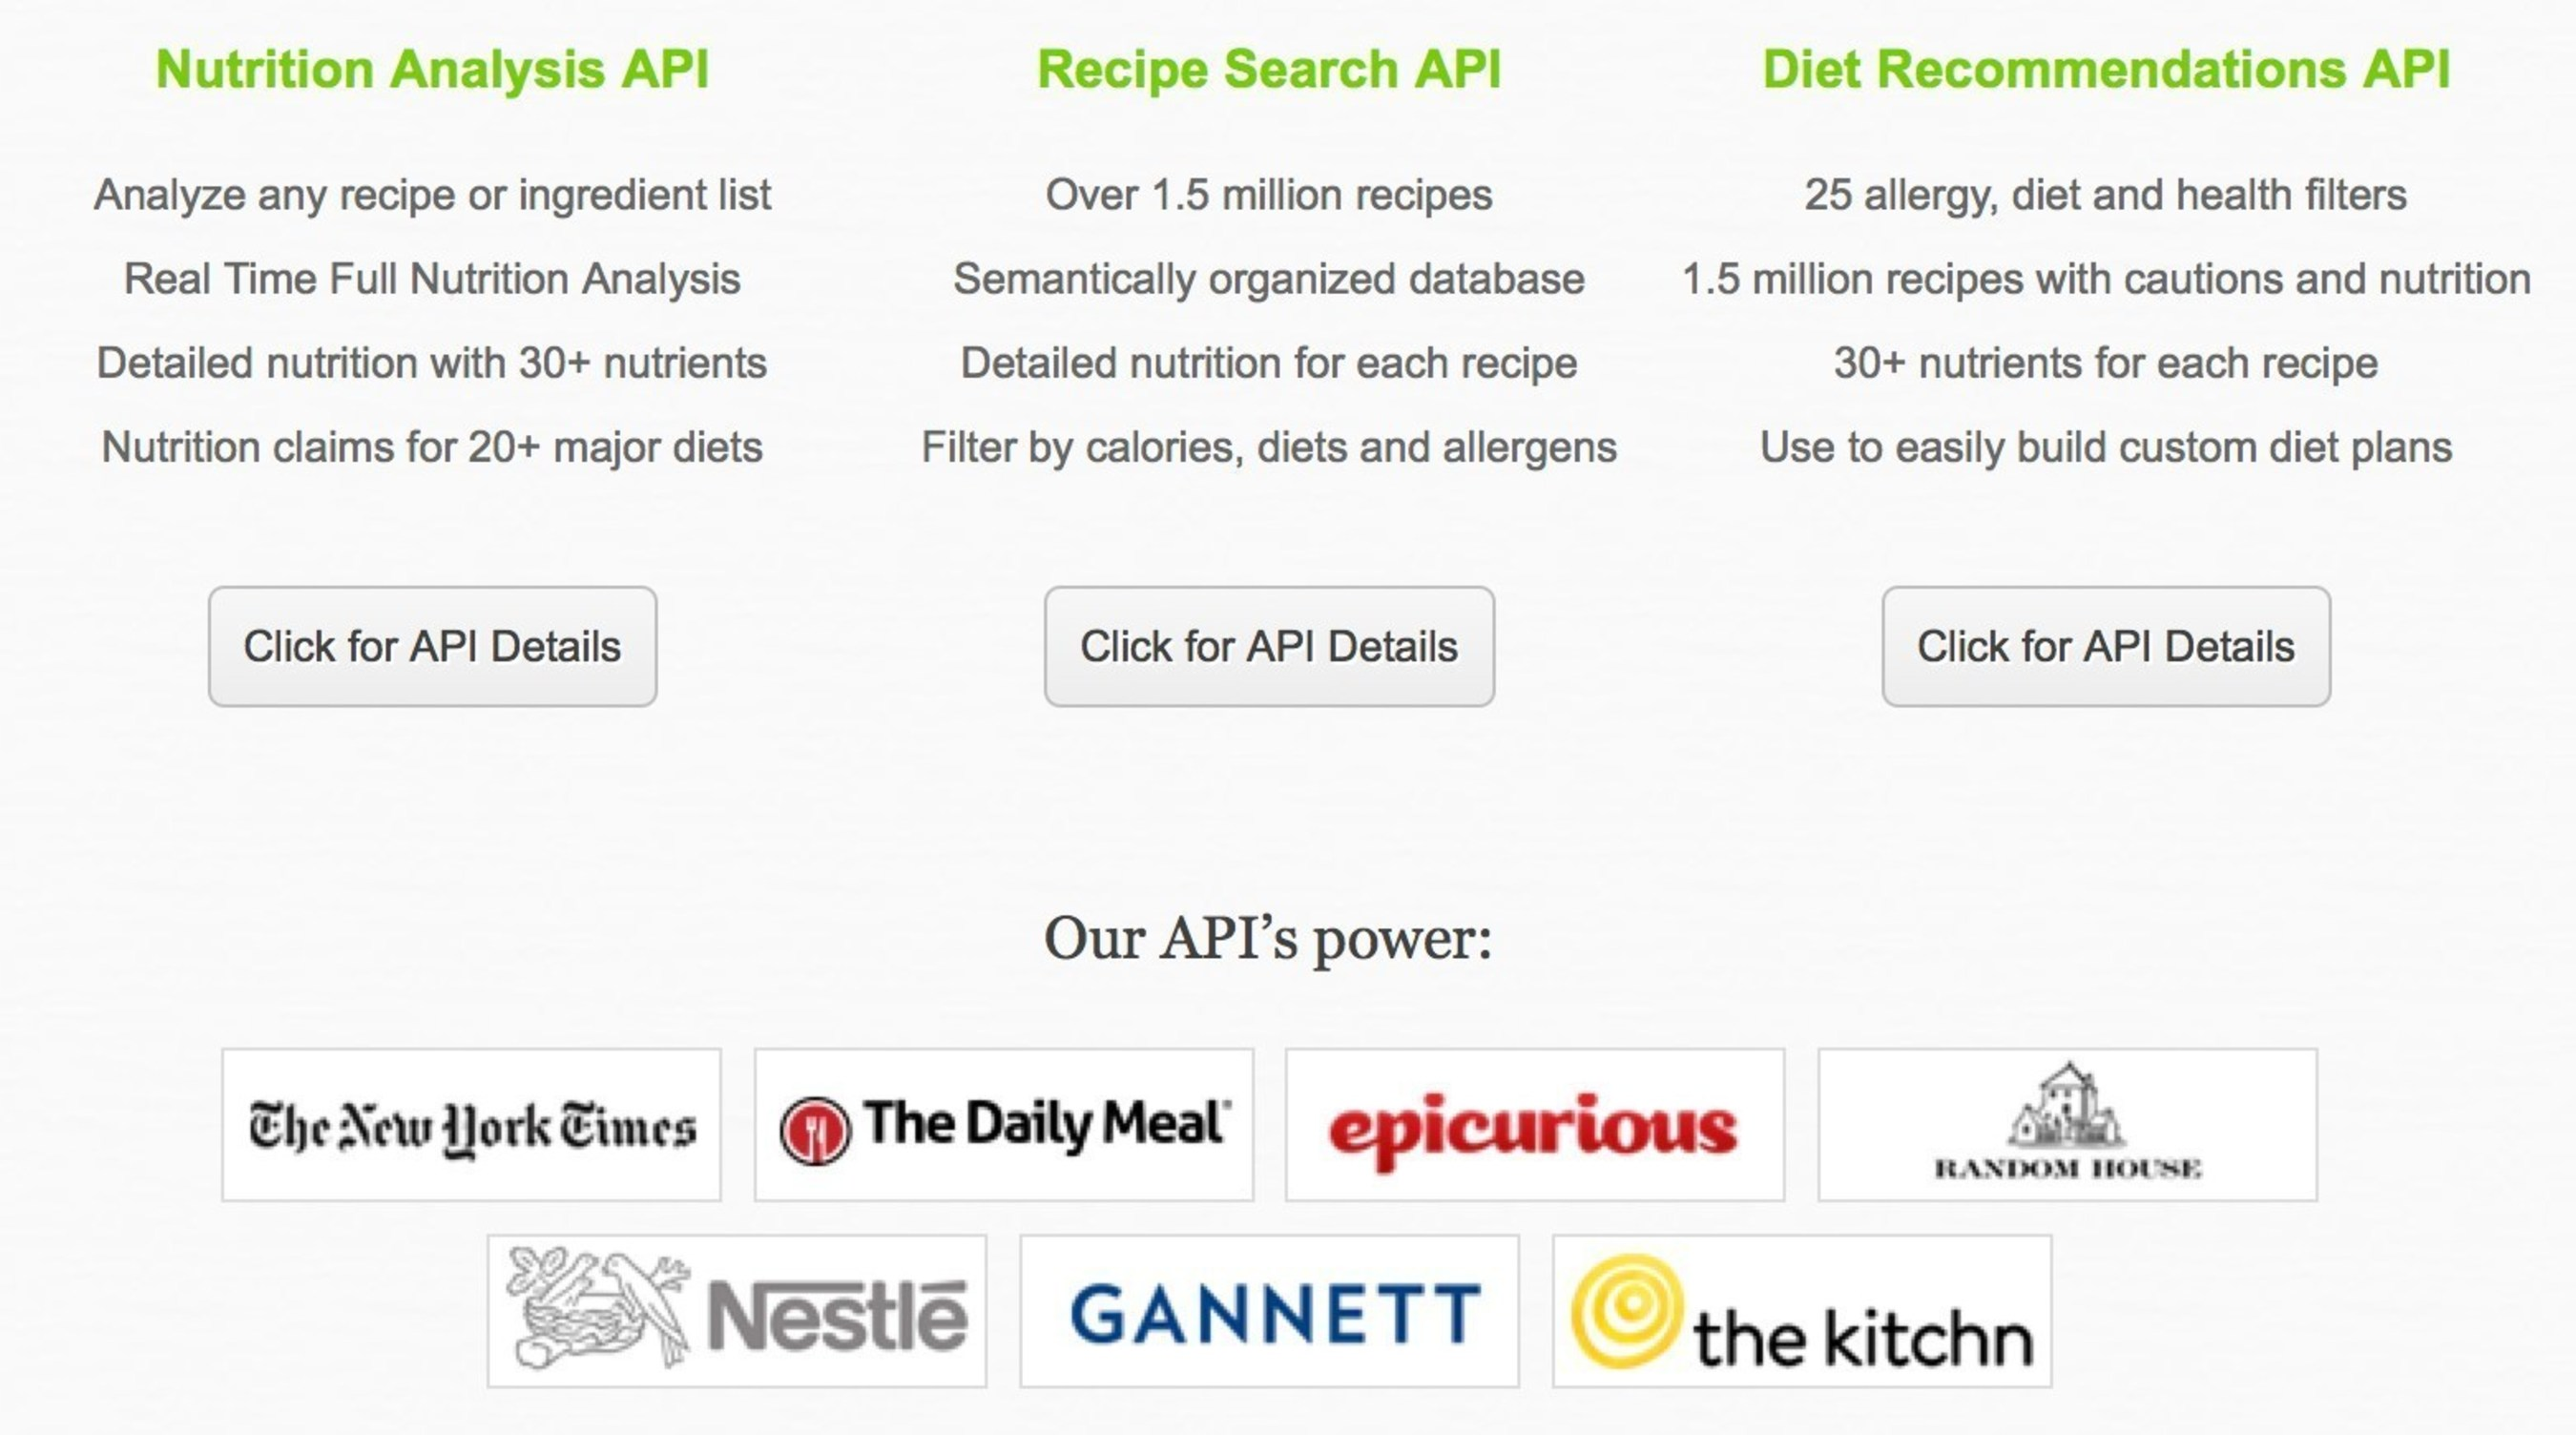 Edamam Releases a New Diet Recommendations API